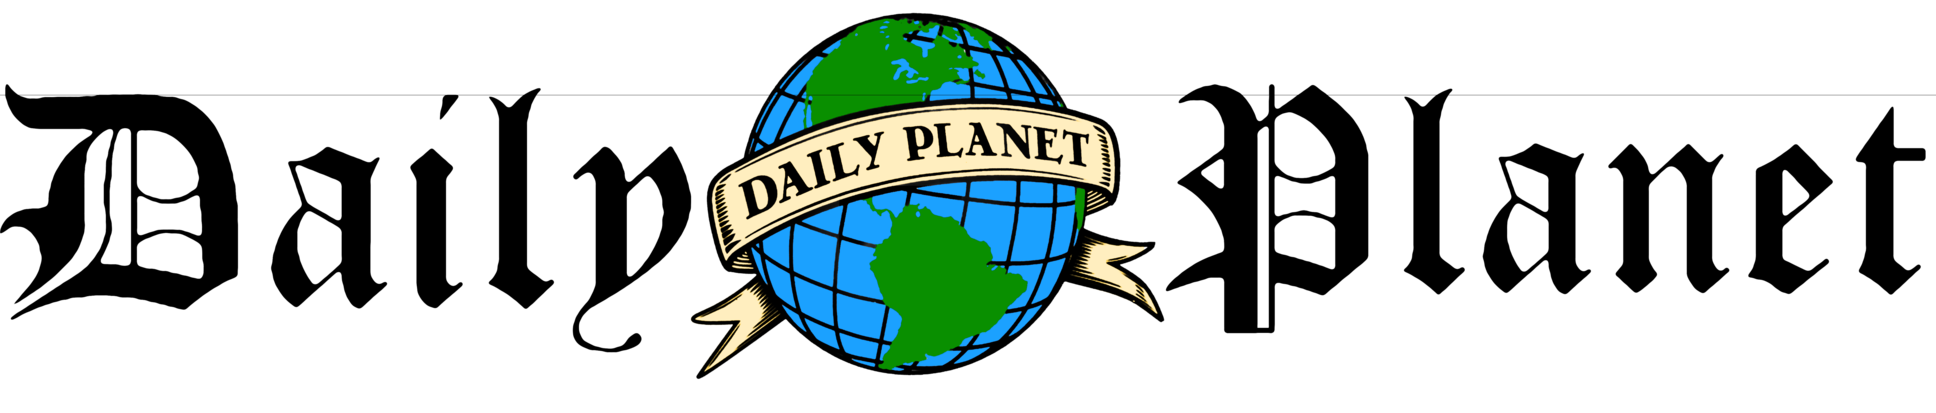 Daily Planet Logo by NoahLC on DeviantArt.